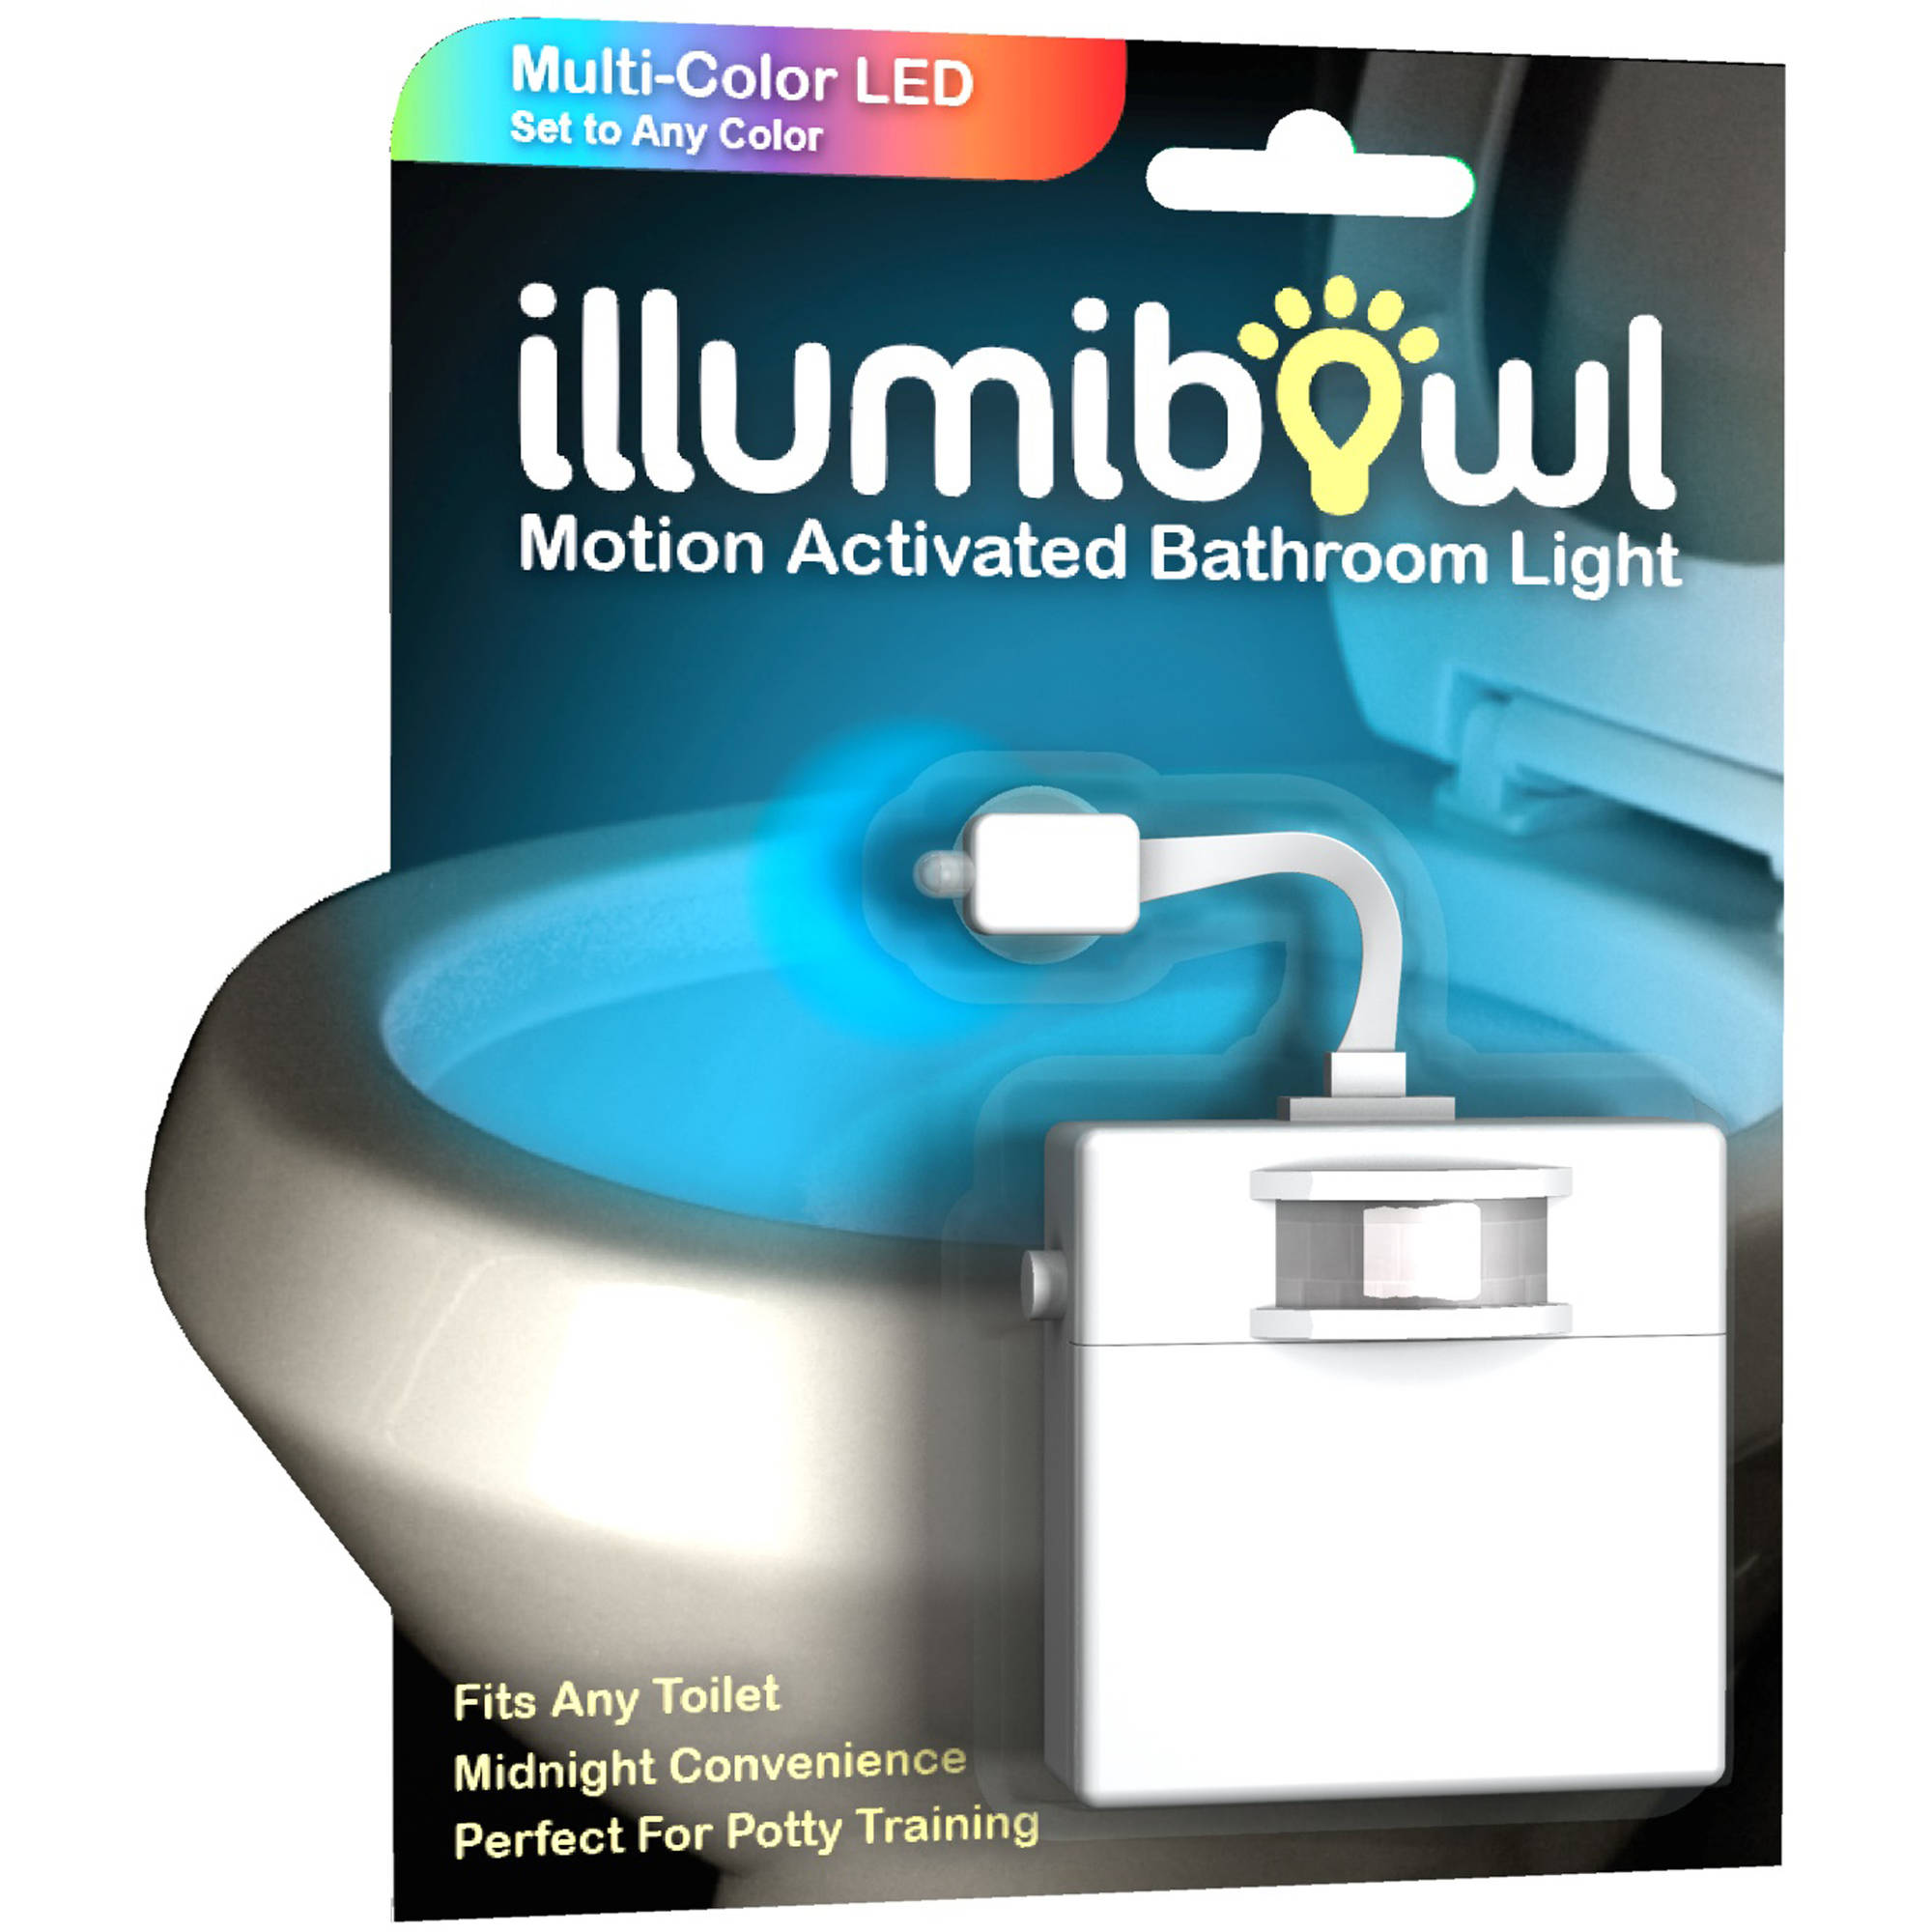 Illumibowl Motion-Activated Bathroom Toilet Night Light